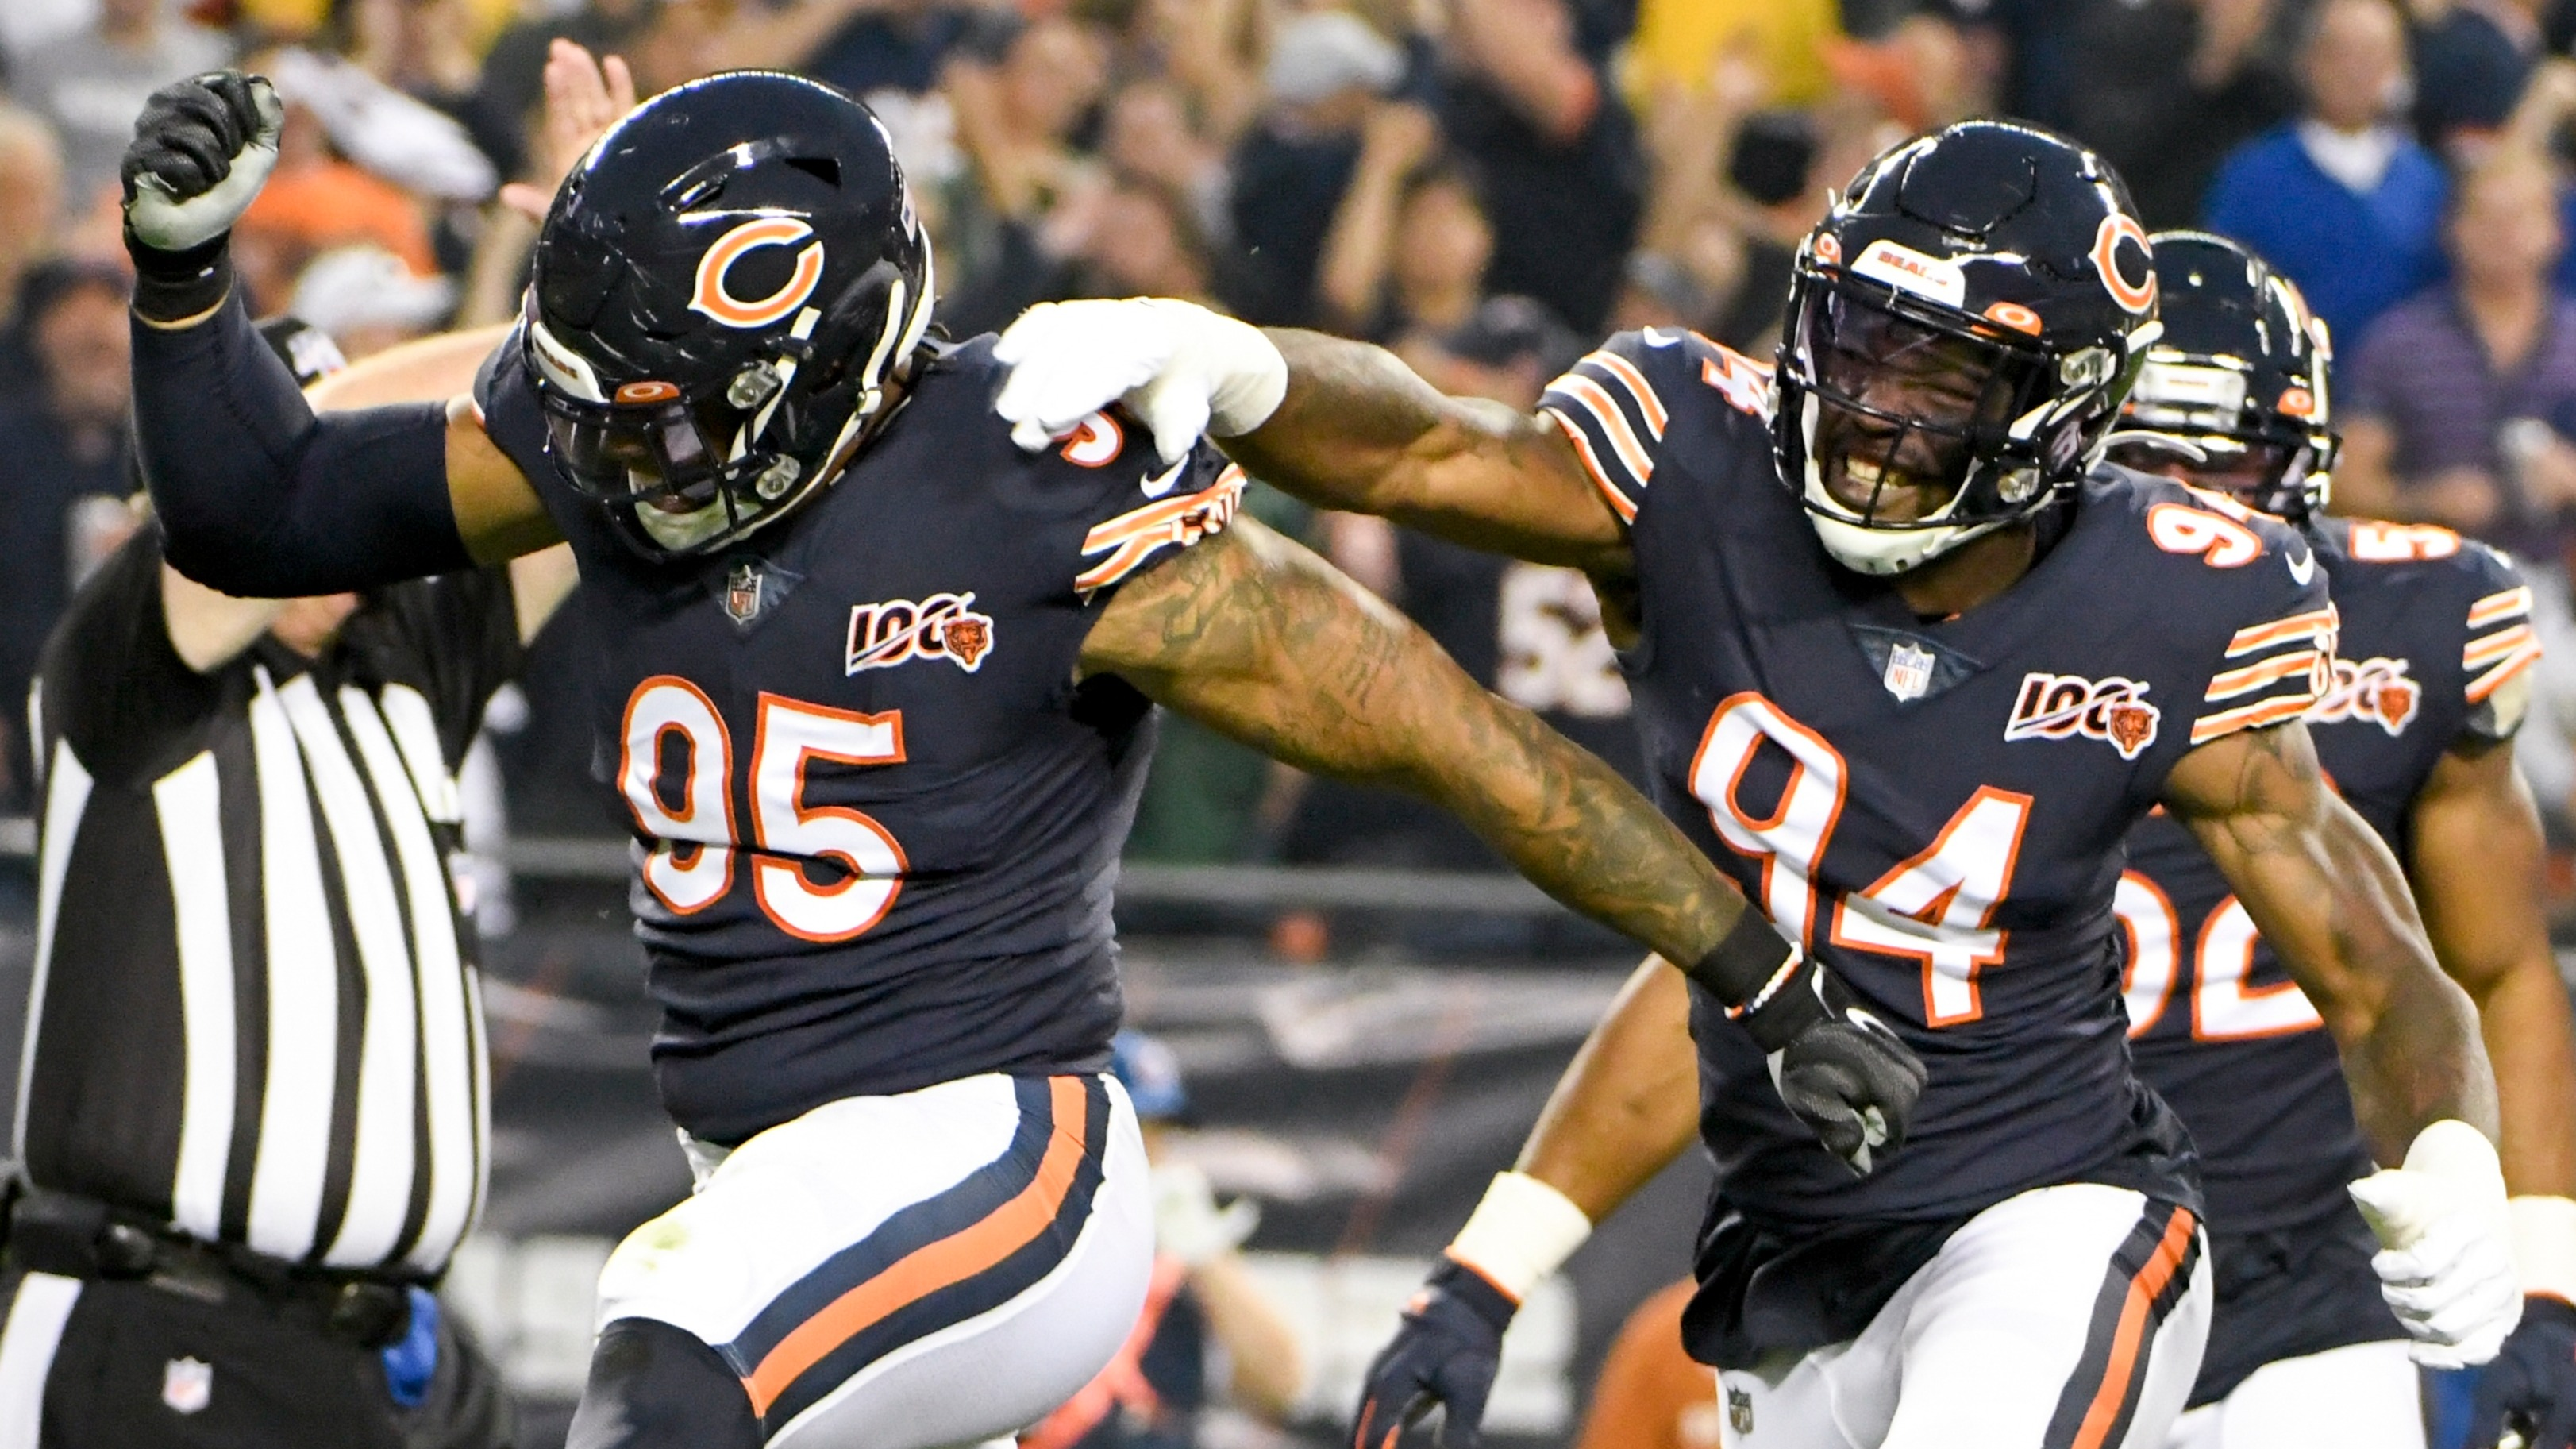 Broncos bears betting line betting odds explained each way double calculator